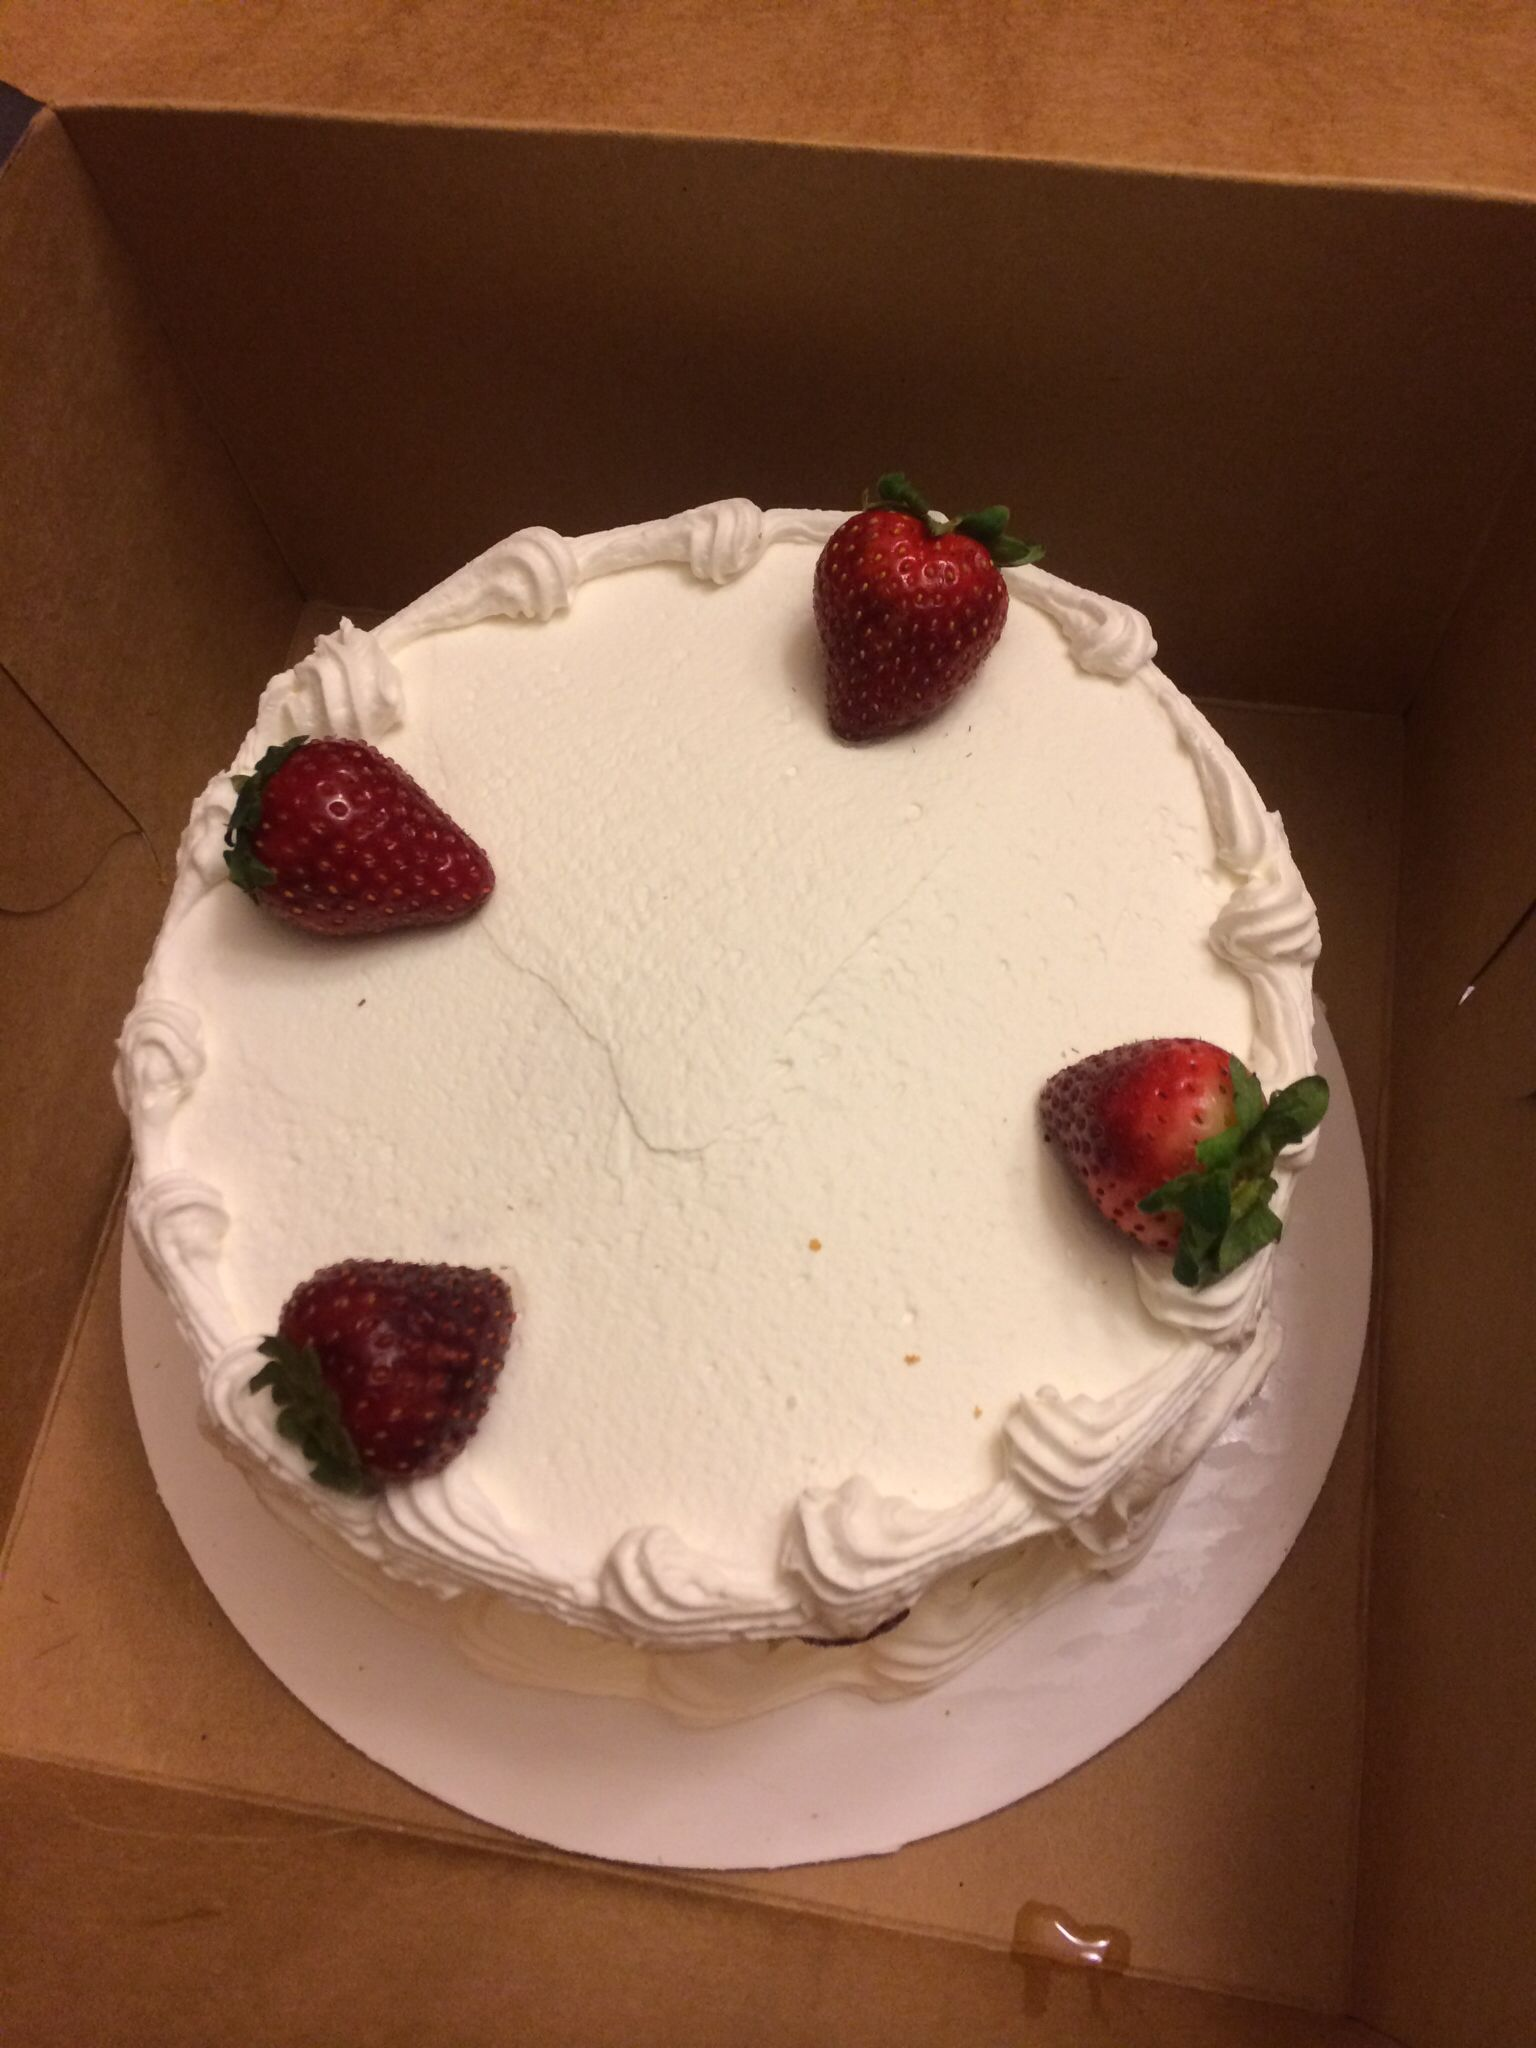 My favorite cake! Tripoli's bakery Lawrence, MA.